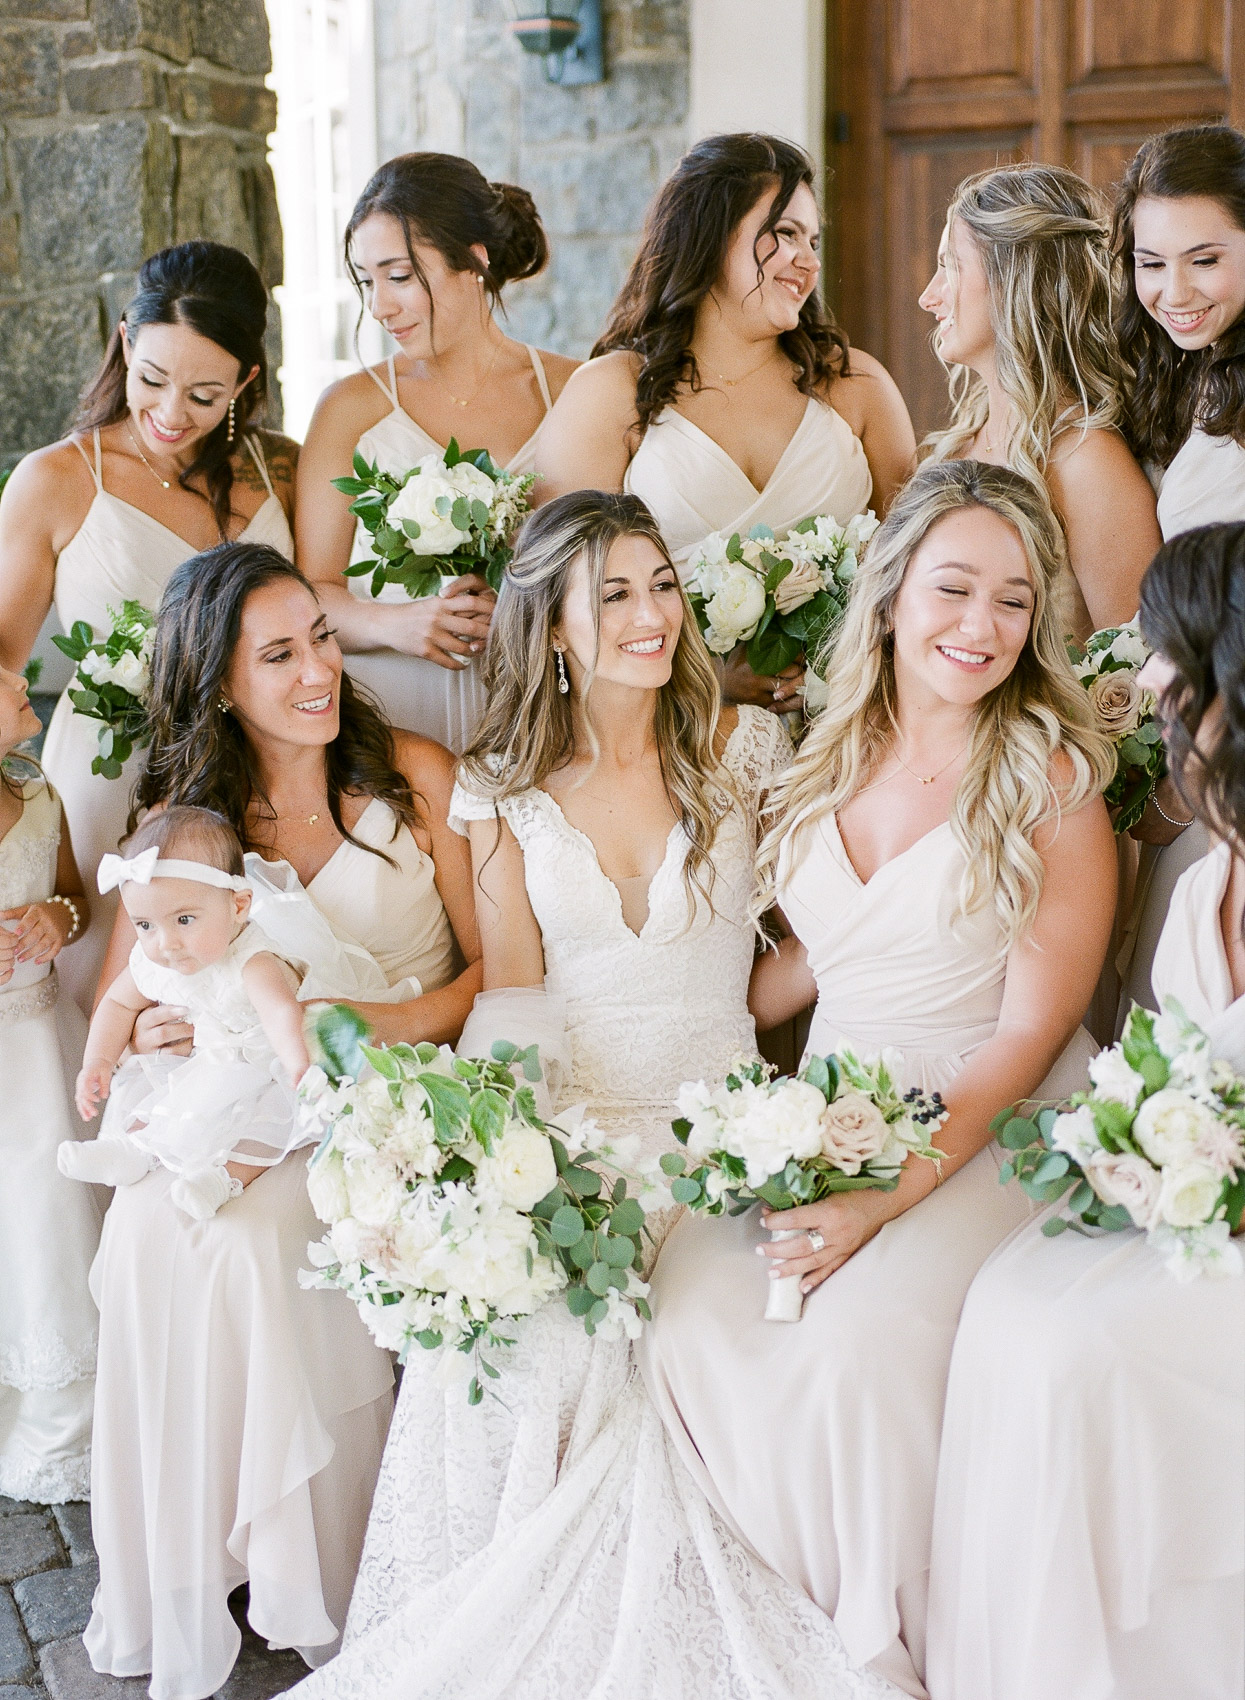 Must have wedding day photo with bridesmaids